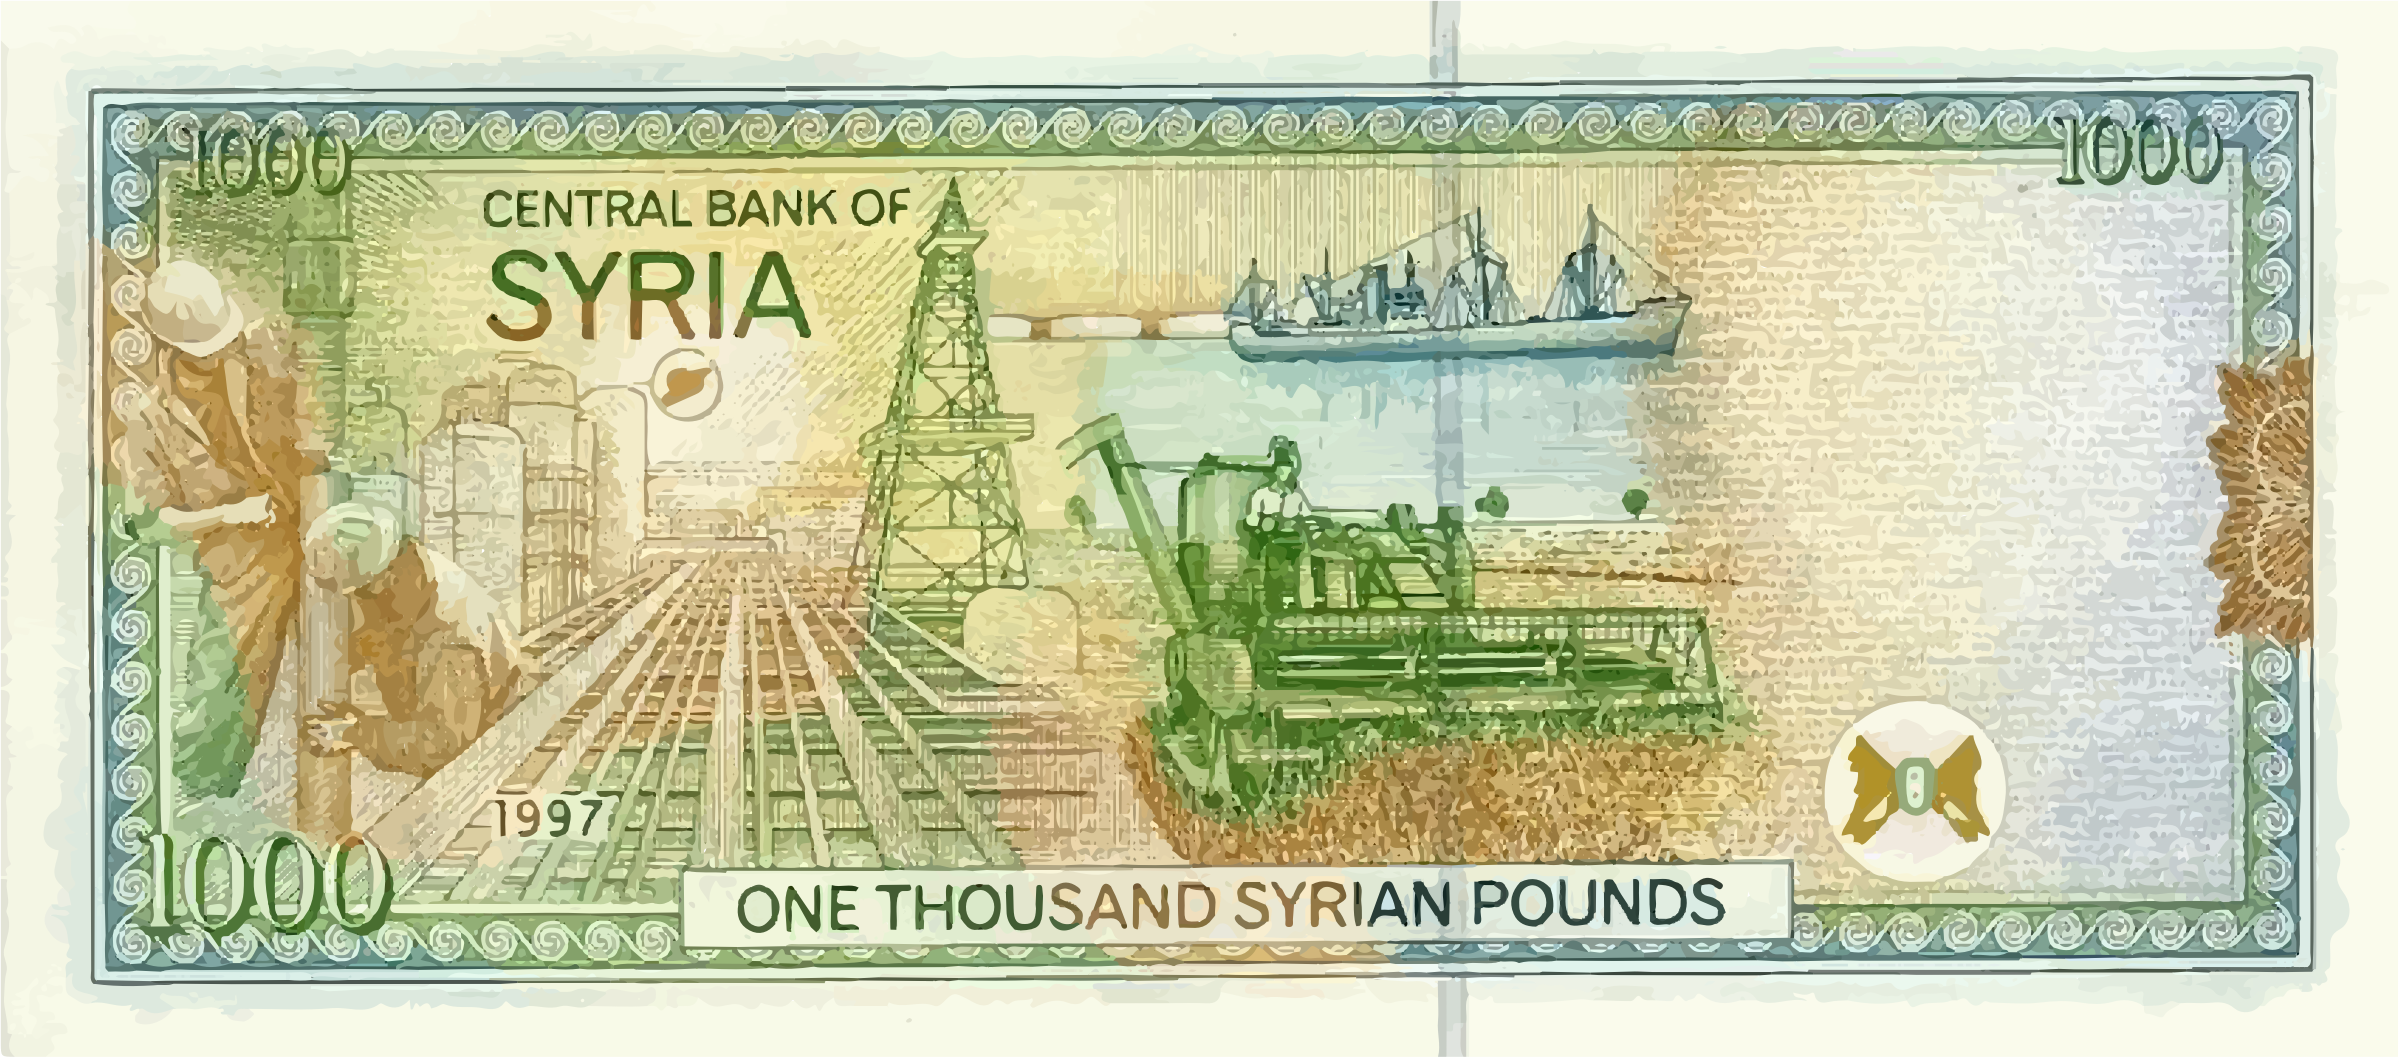 1000 Syrian Pounds Reverse by GDJ